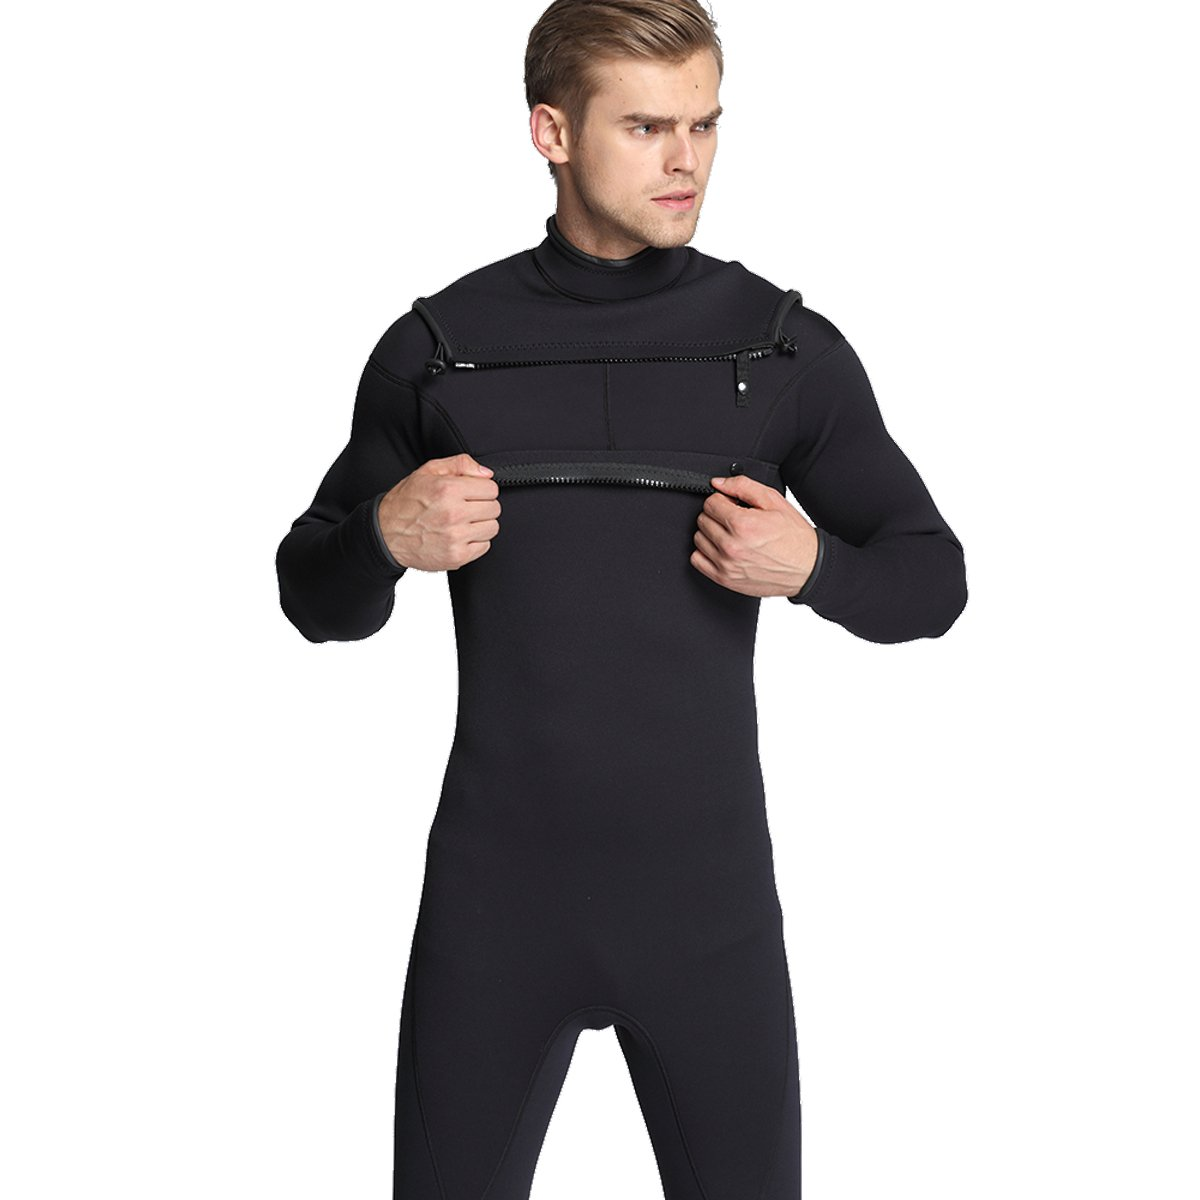 40 Best wetsuits images   Wetsuit, Surfing, Workout wear